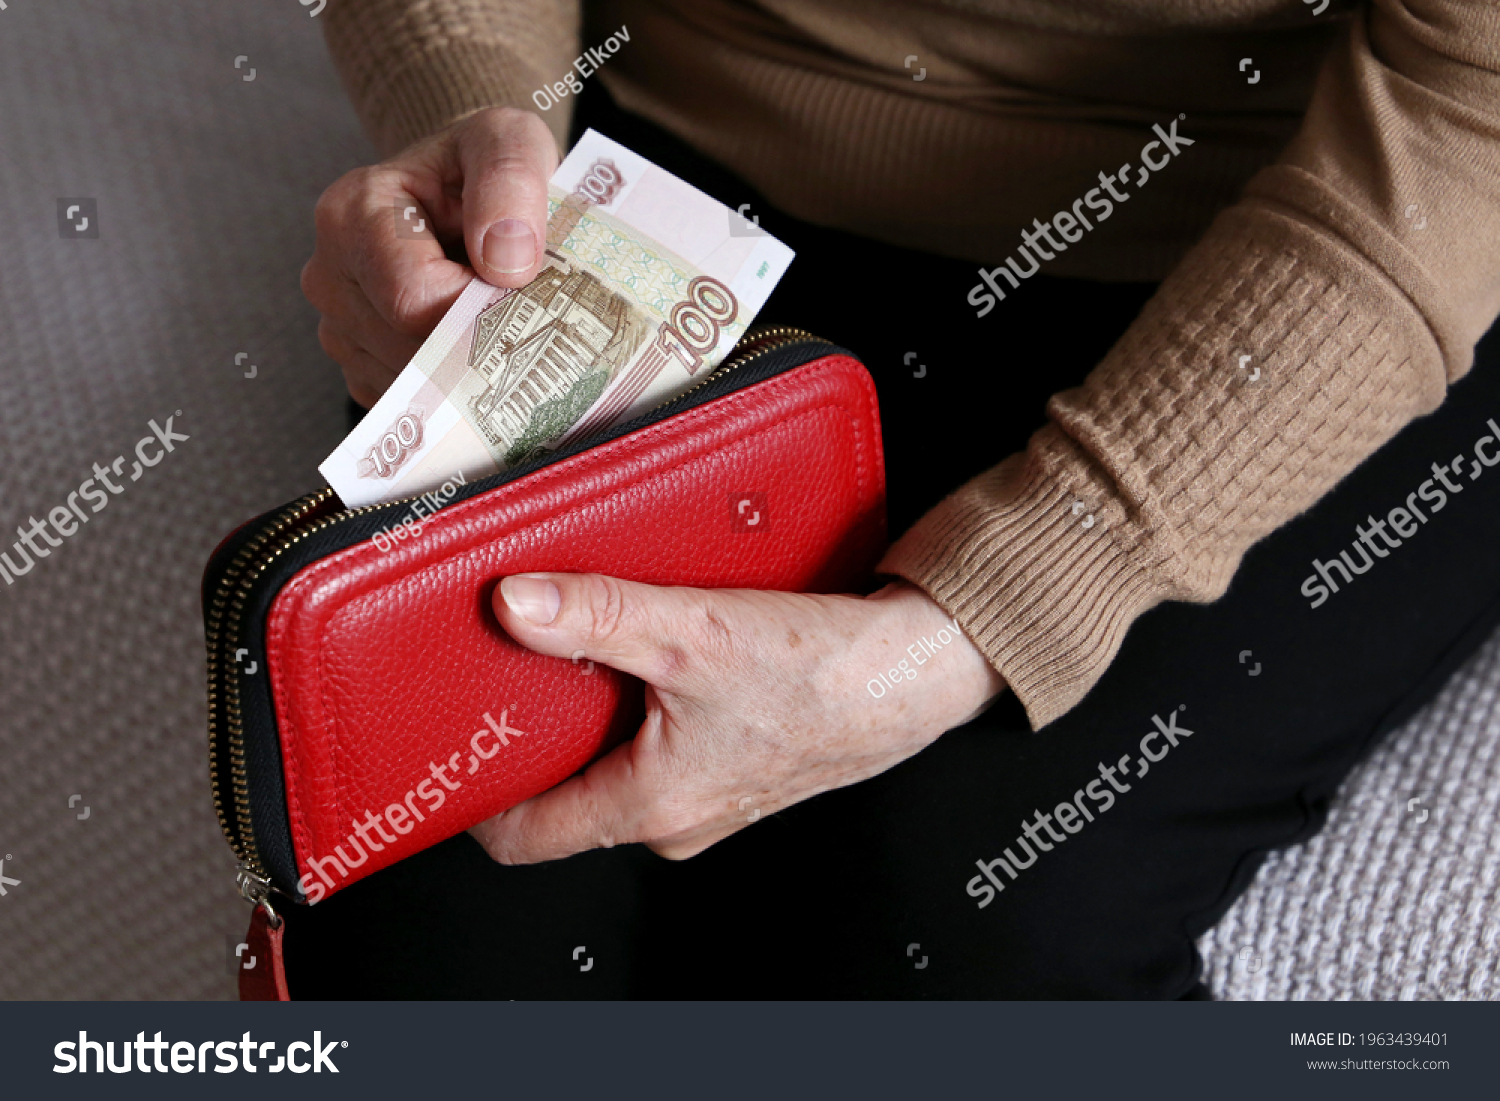 Elderly woman takes out russian rubles from her wallet, wrinkled female hands closeup. Concept of poverty in Russia, pension payments, pensioner #1963439401